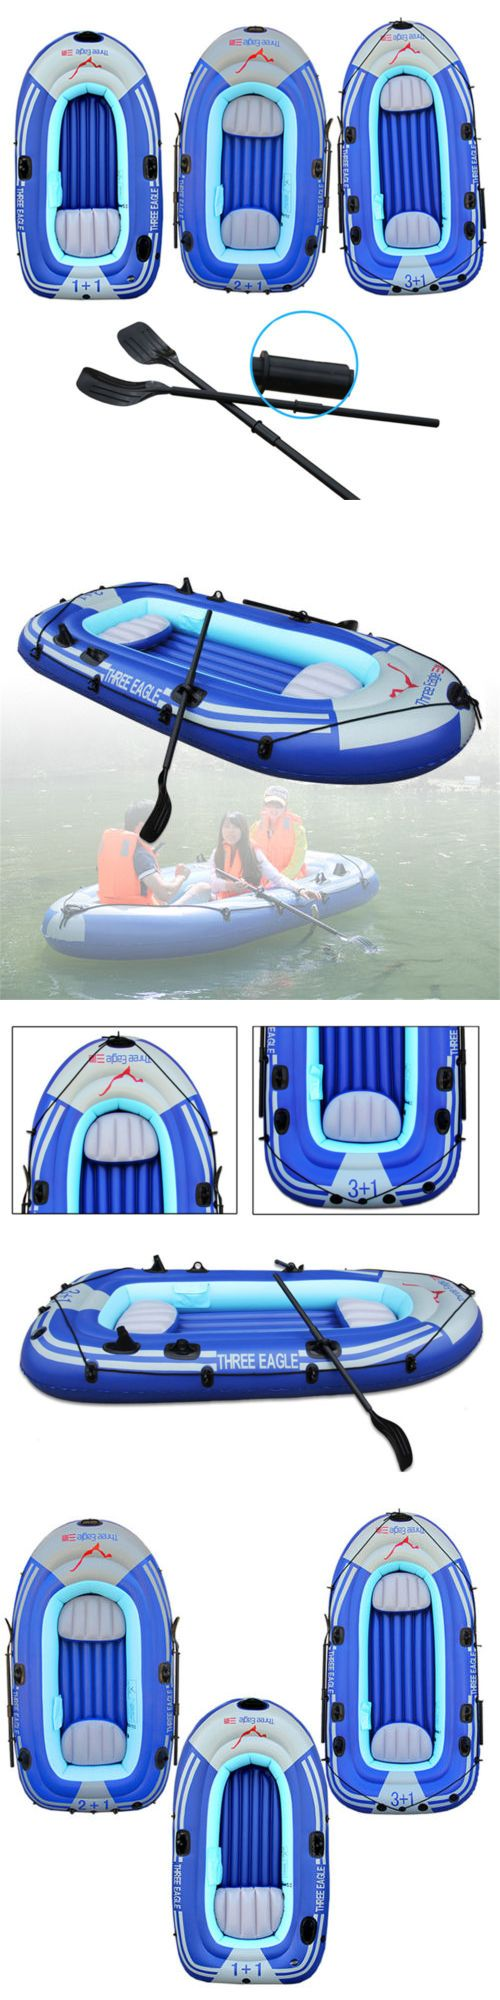 Inflatables 87090: 2-4 Person Kayak Inflatable Boat Dinghy Raft Canoe Fishing Boat + Oars+Pump Usa -> BUY IT NOW ONLY: $67.7 on eBay!